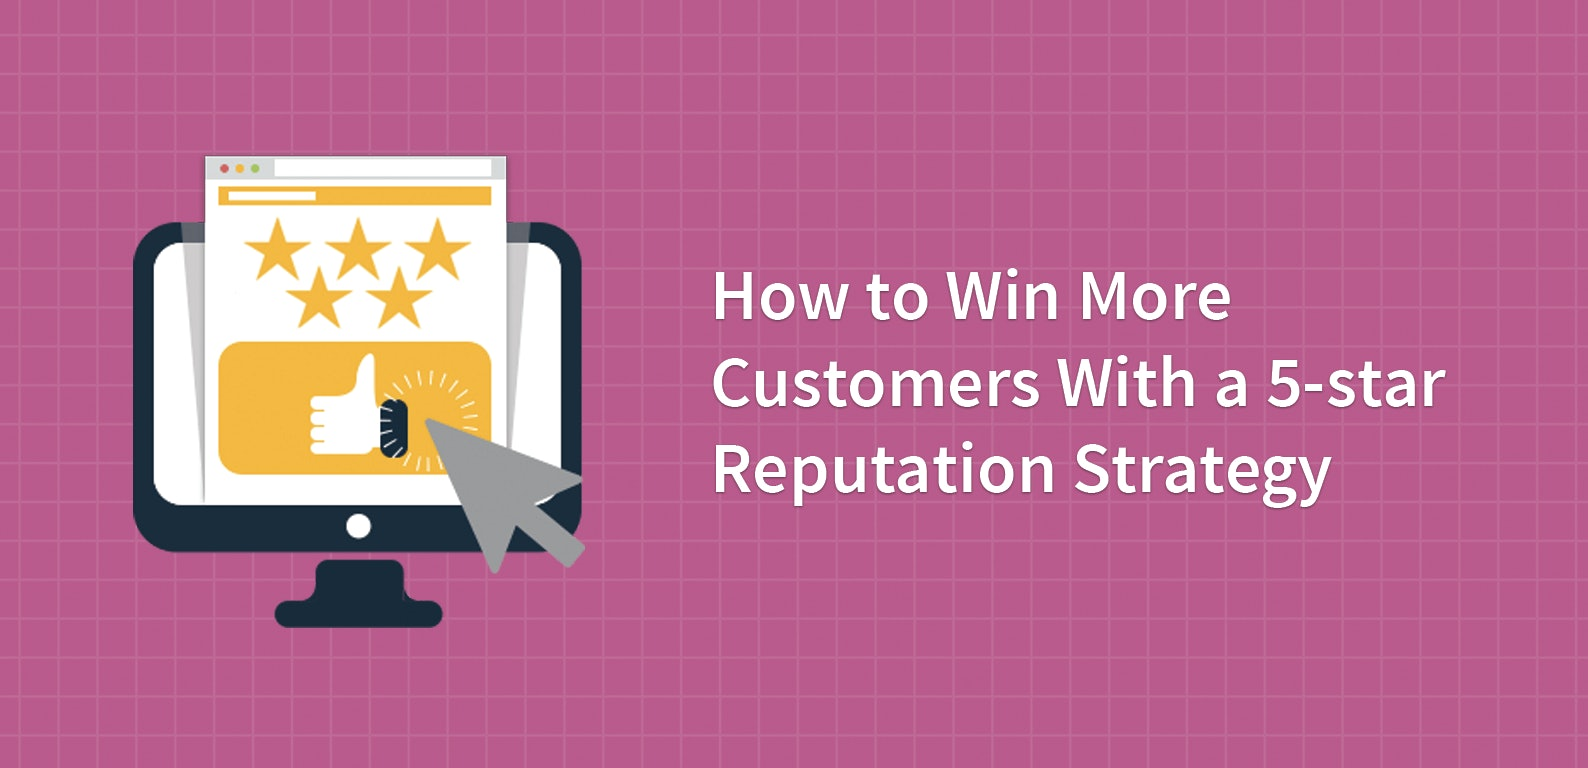 VIDEO: How to Win More Customers With a 5-star Reputation Strategy